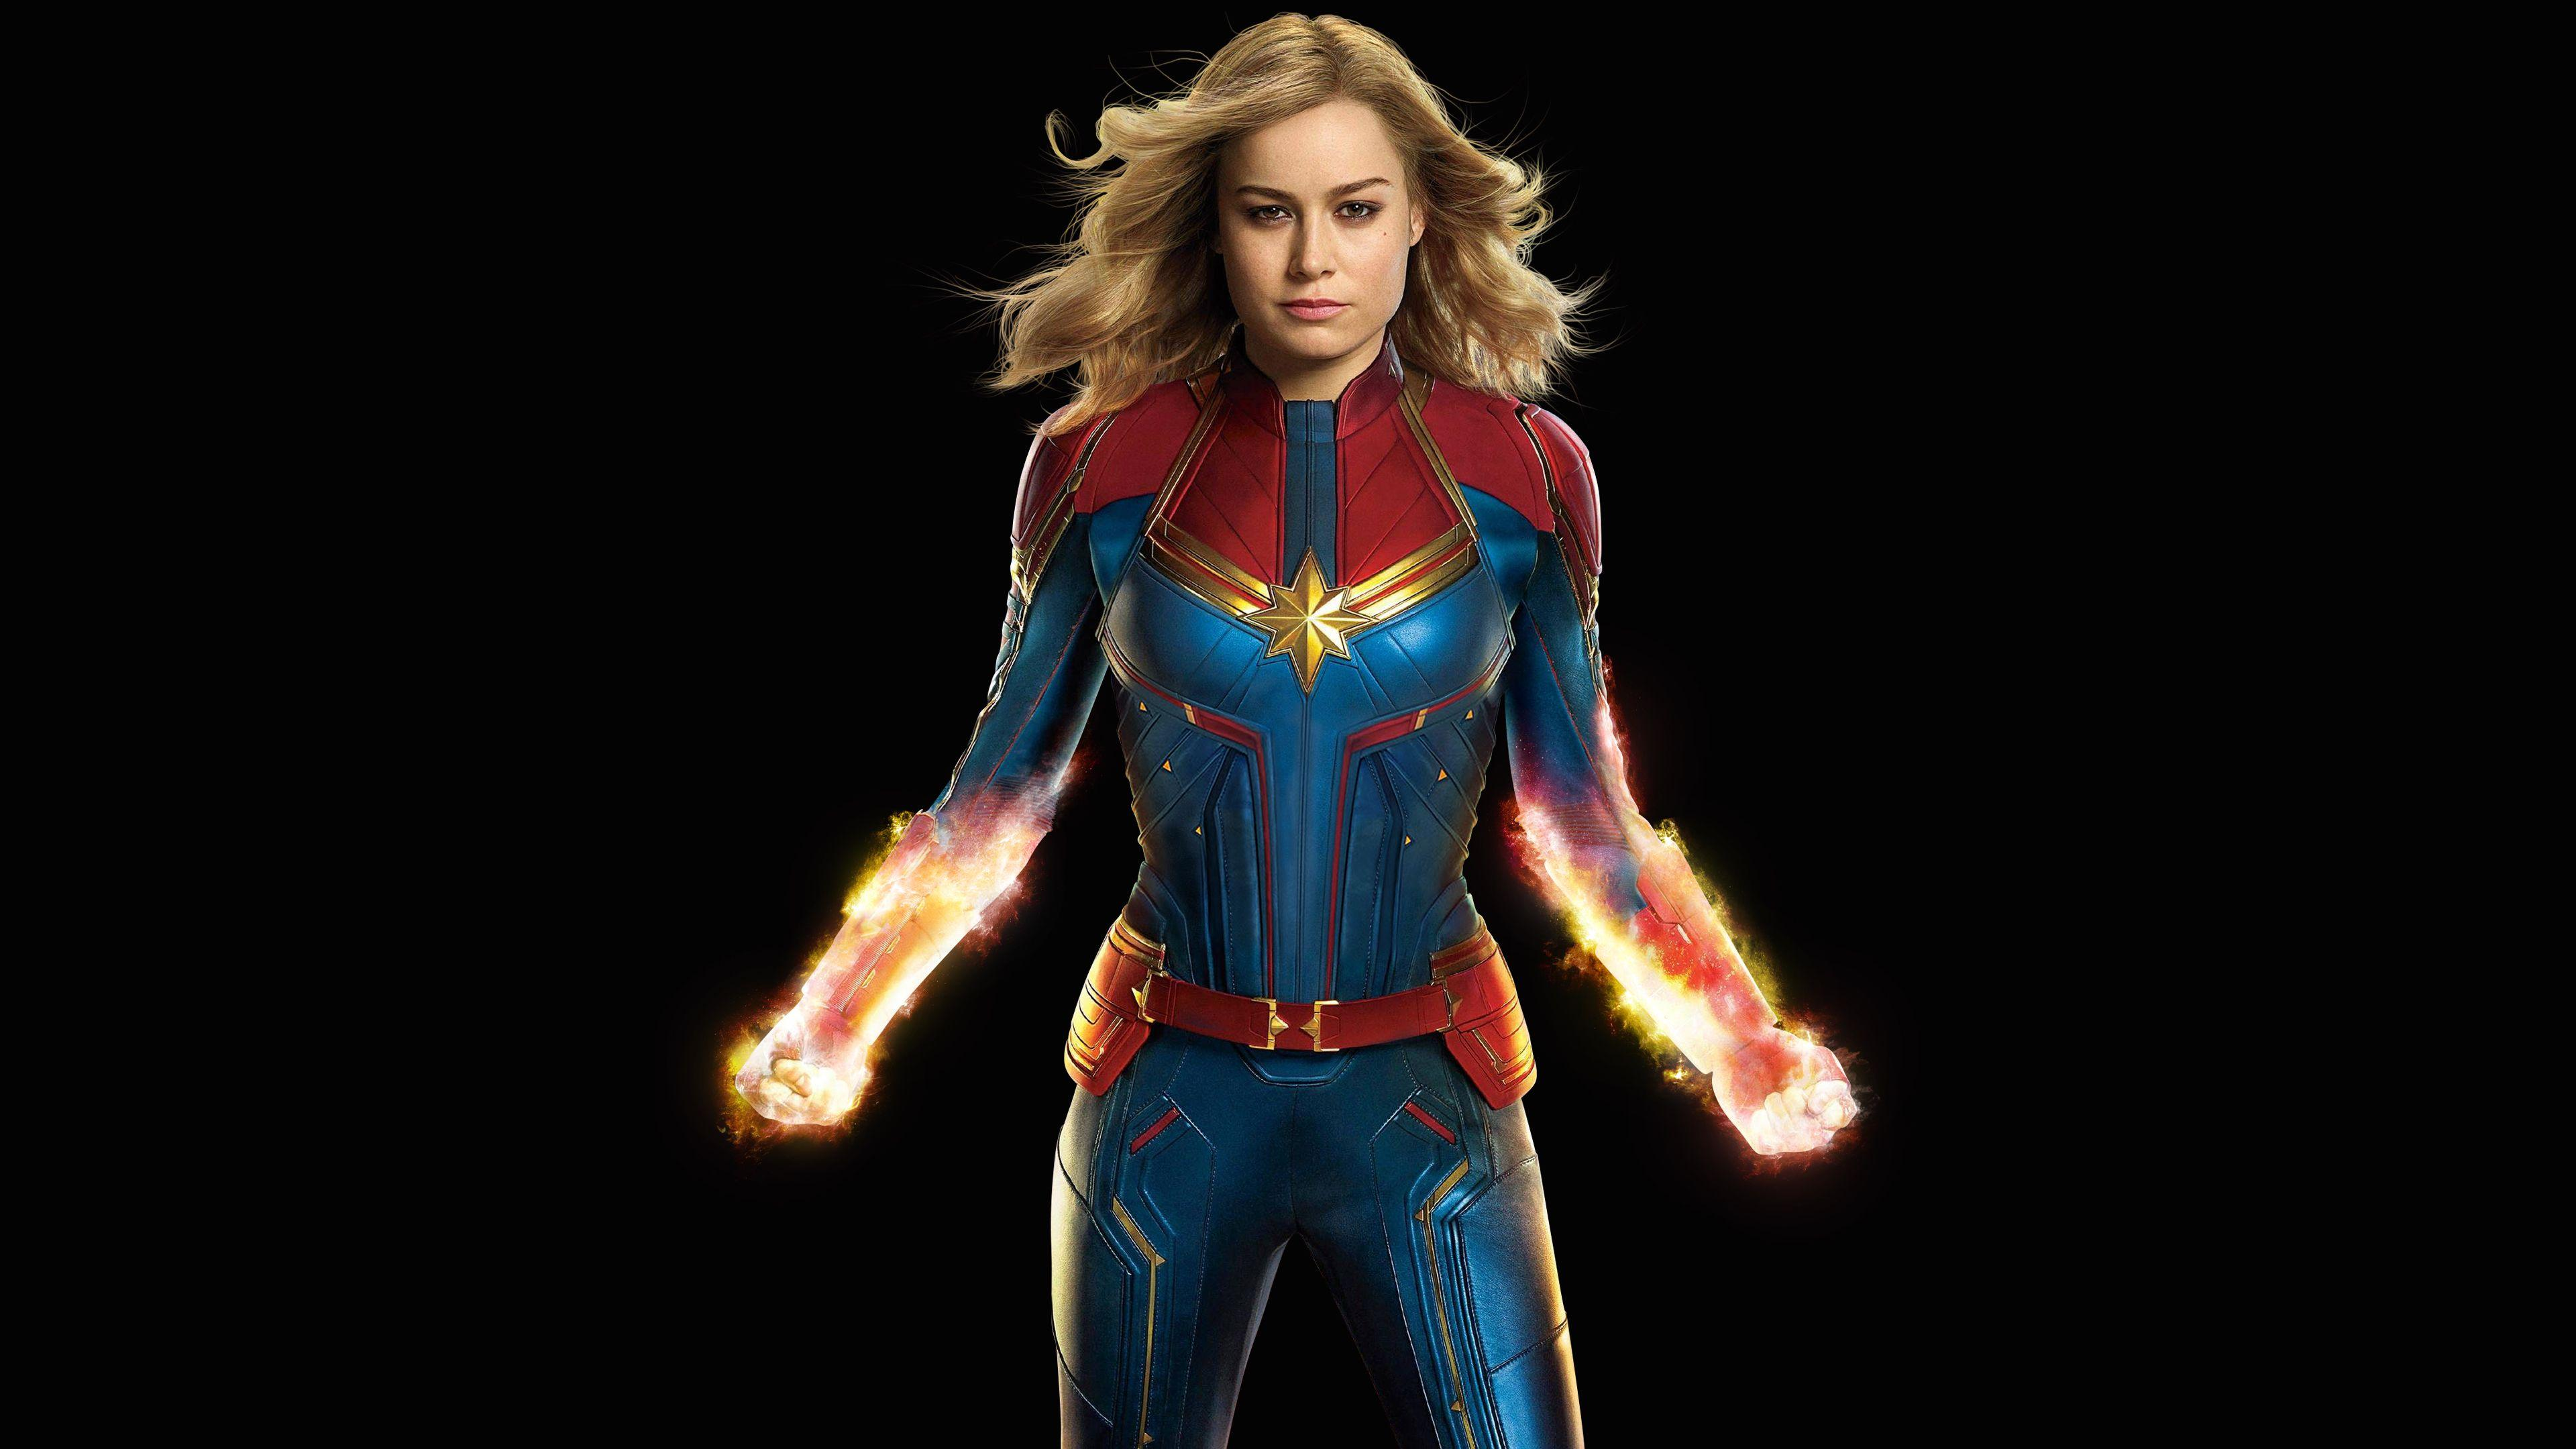 Captain Marvel Hd Wallpapers Wallpaper Cave